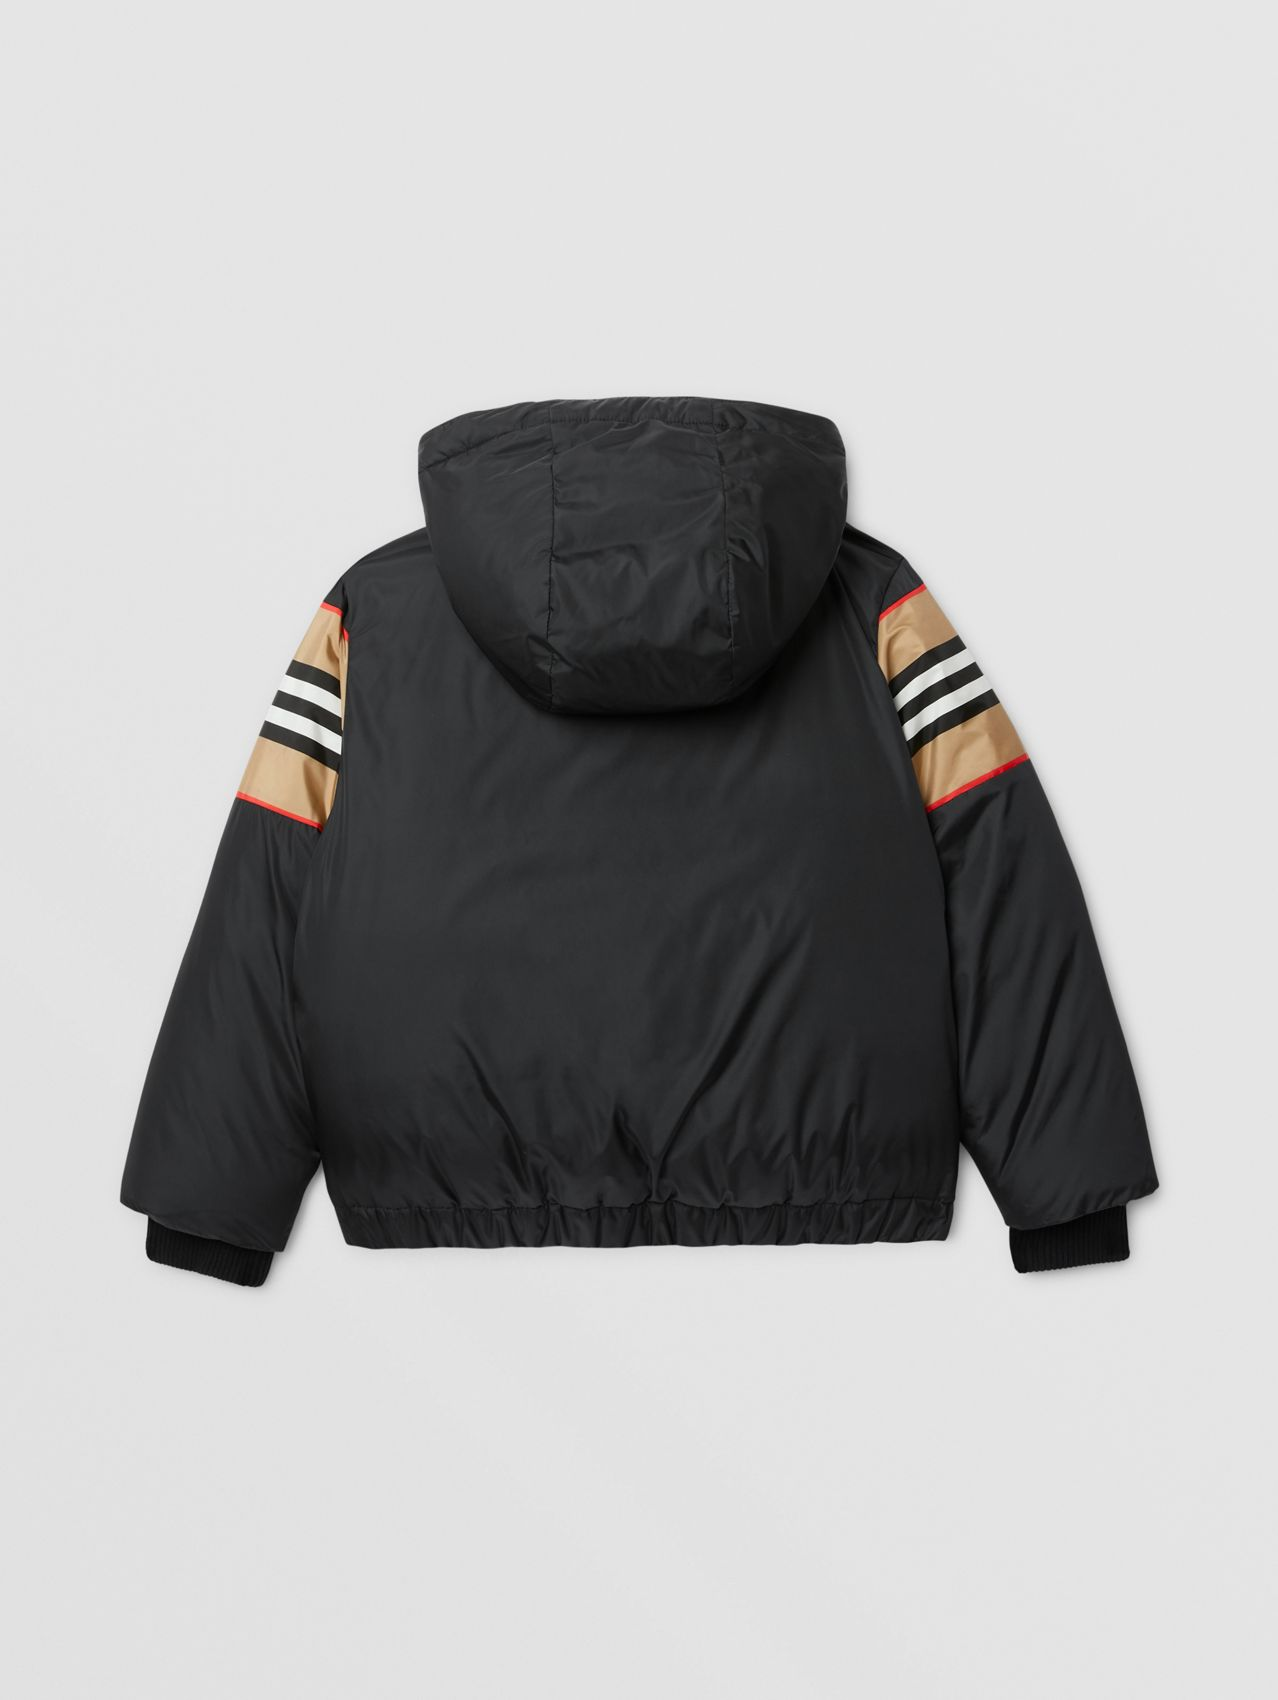 Logo Appliqué Icon Stripe Panel Down-filled Jacket in Black